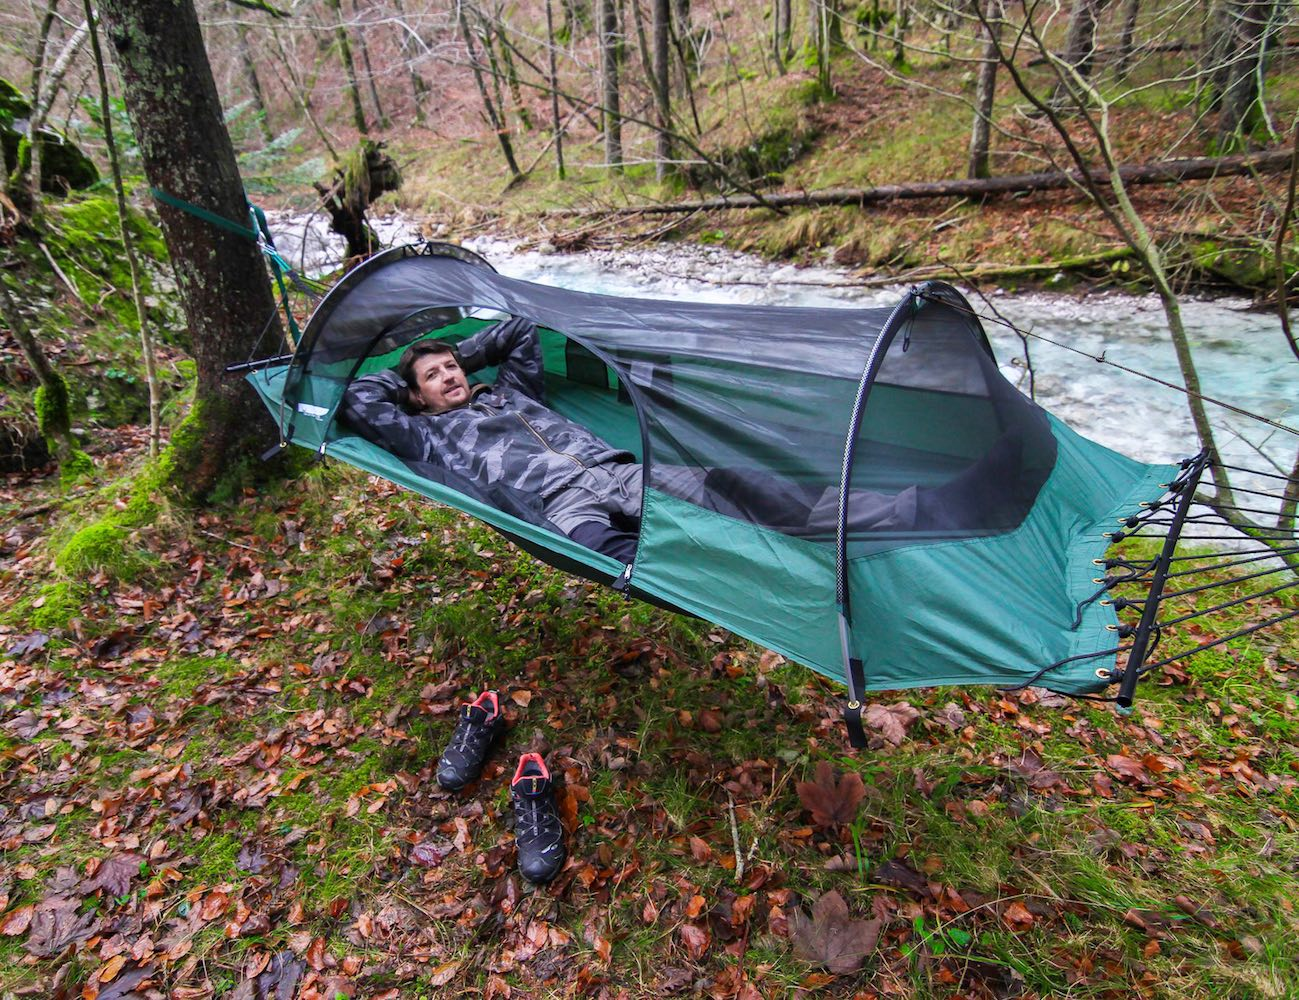 Medium image of     lawson hammock  blue ridge camping hammock